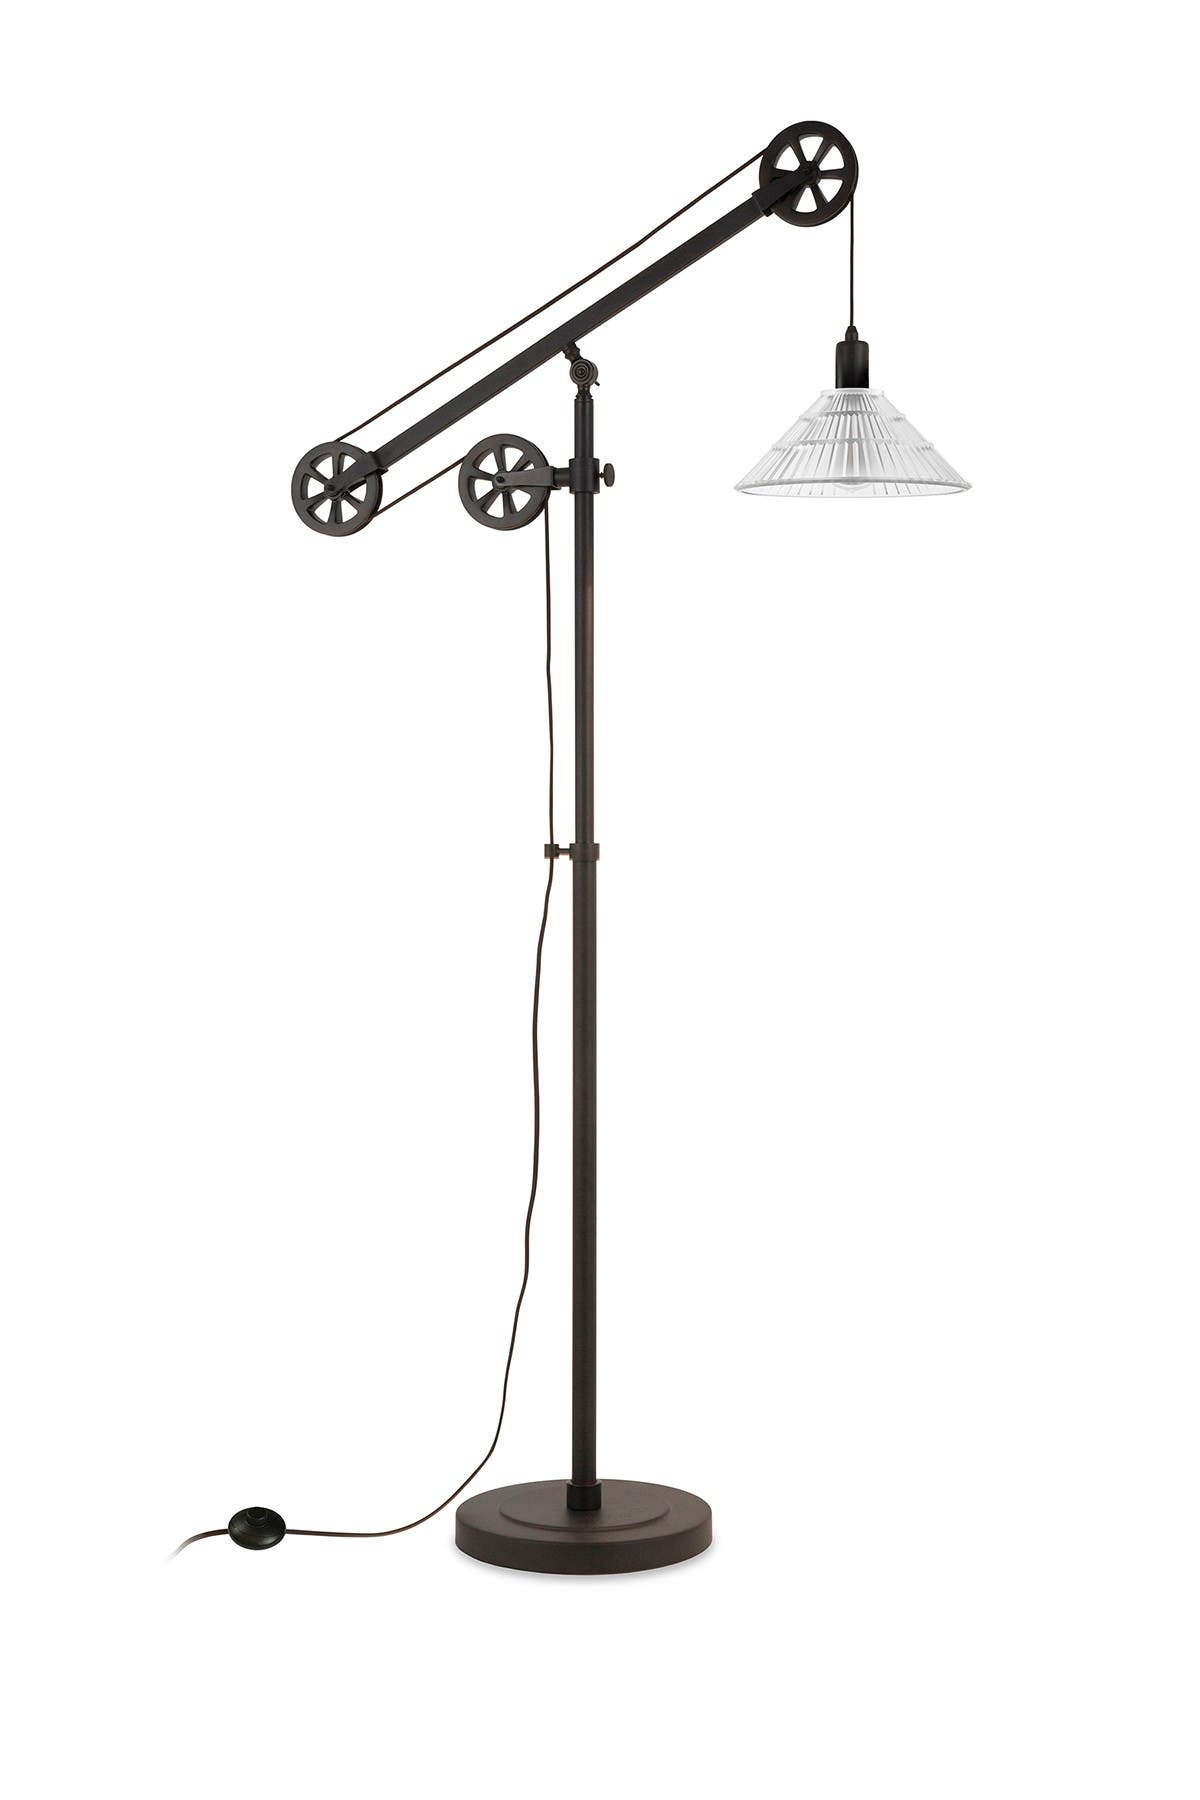 Image of Addison and Lane Descartes Floor Lamp - Blackened Bronze Finish